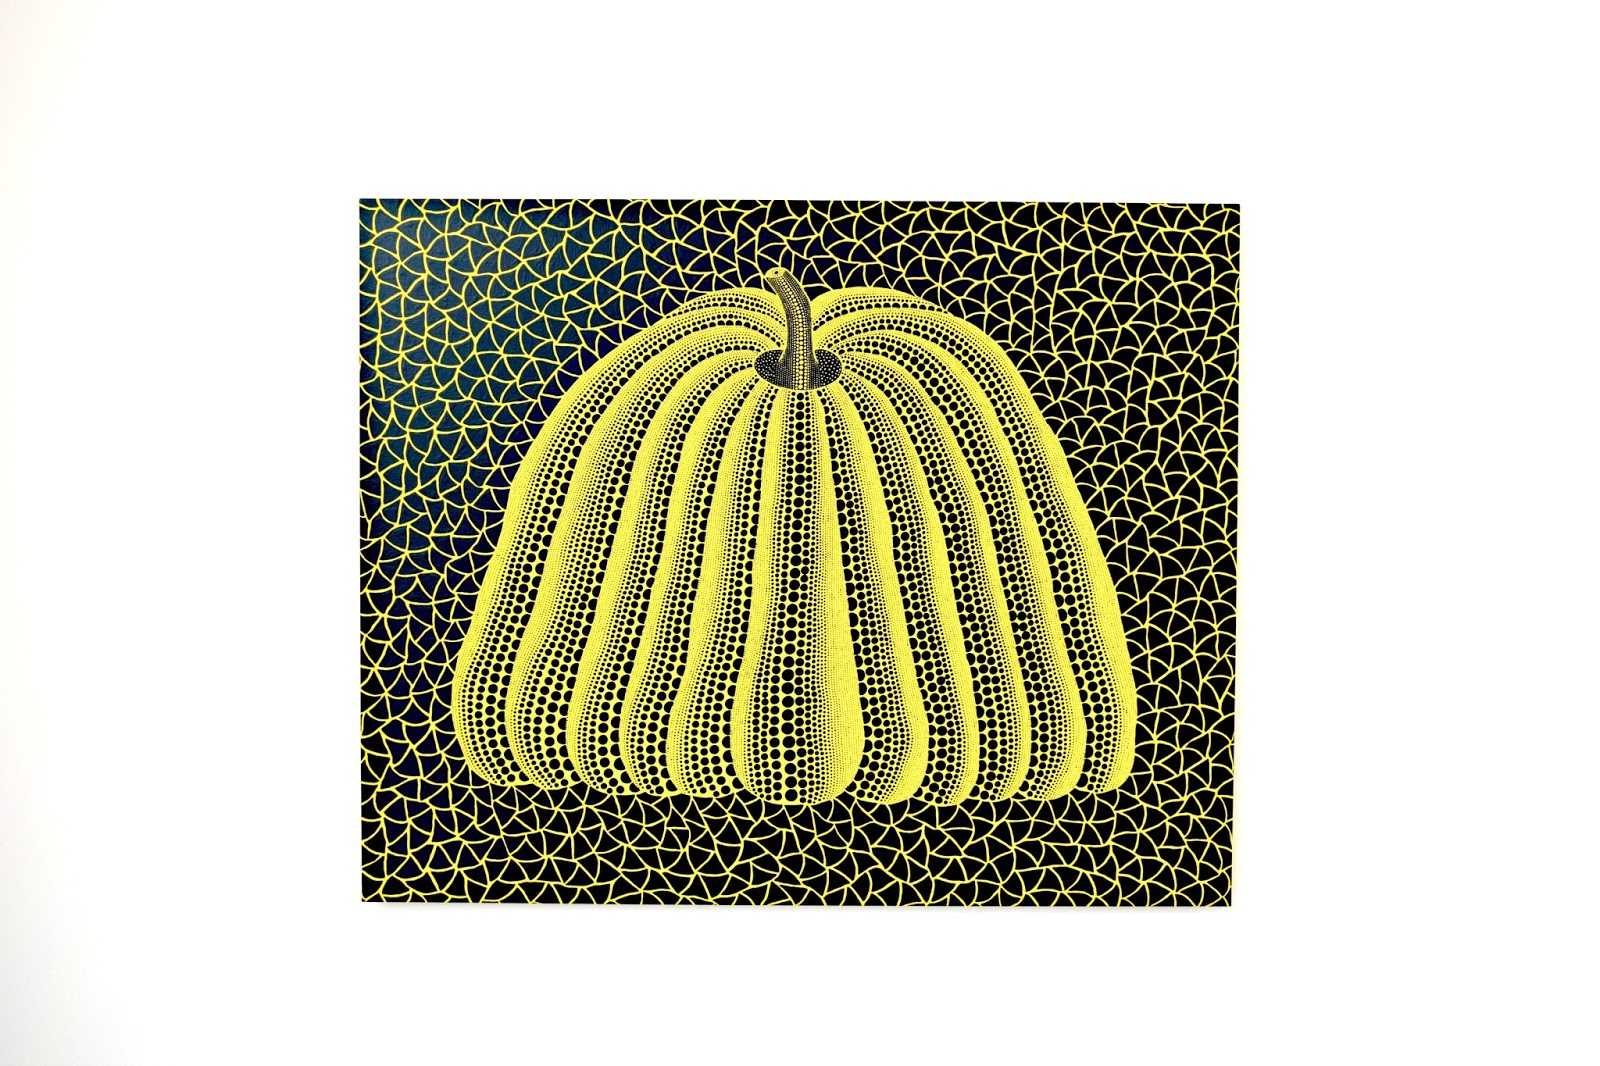 Pumpkin painting acryl on canvas by Yayoi Kusama